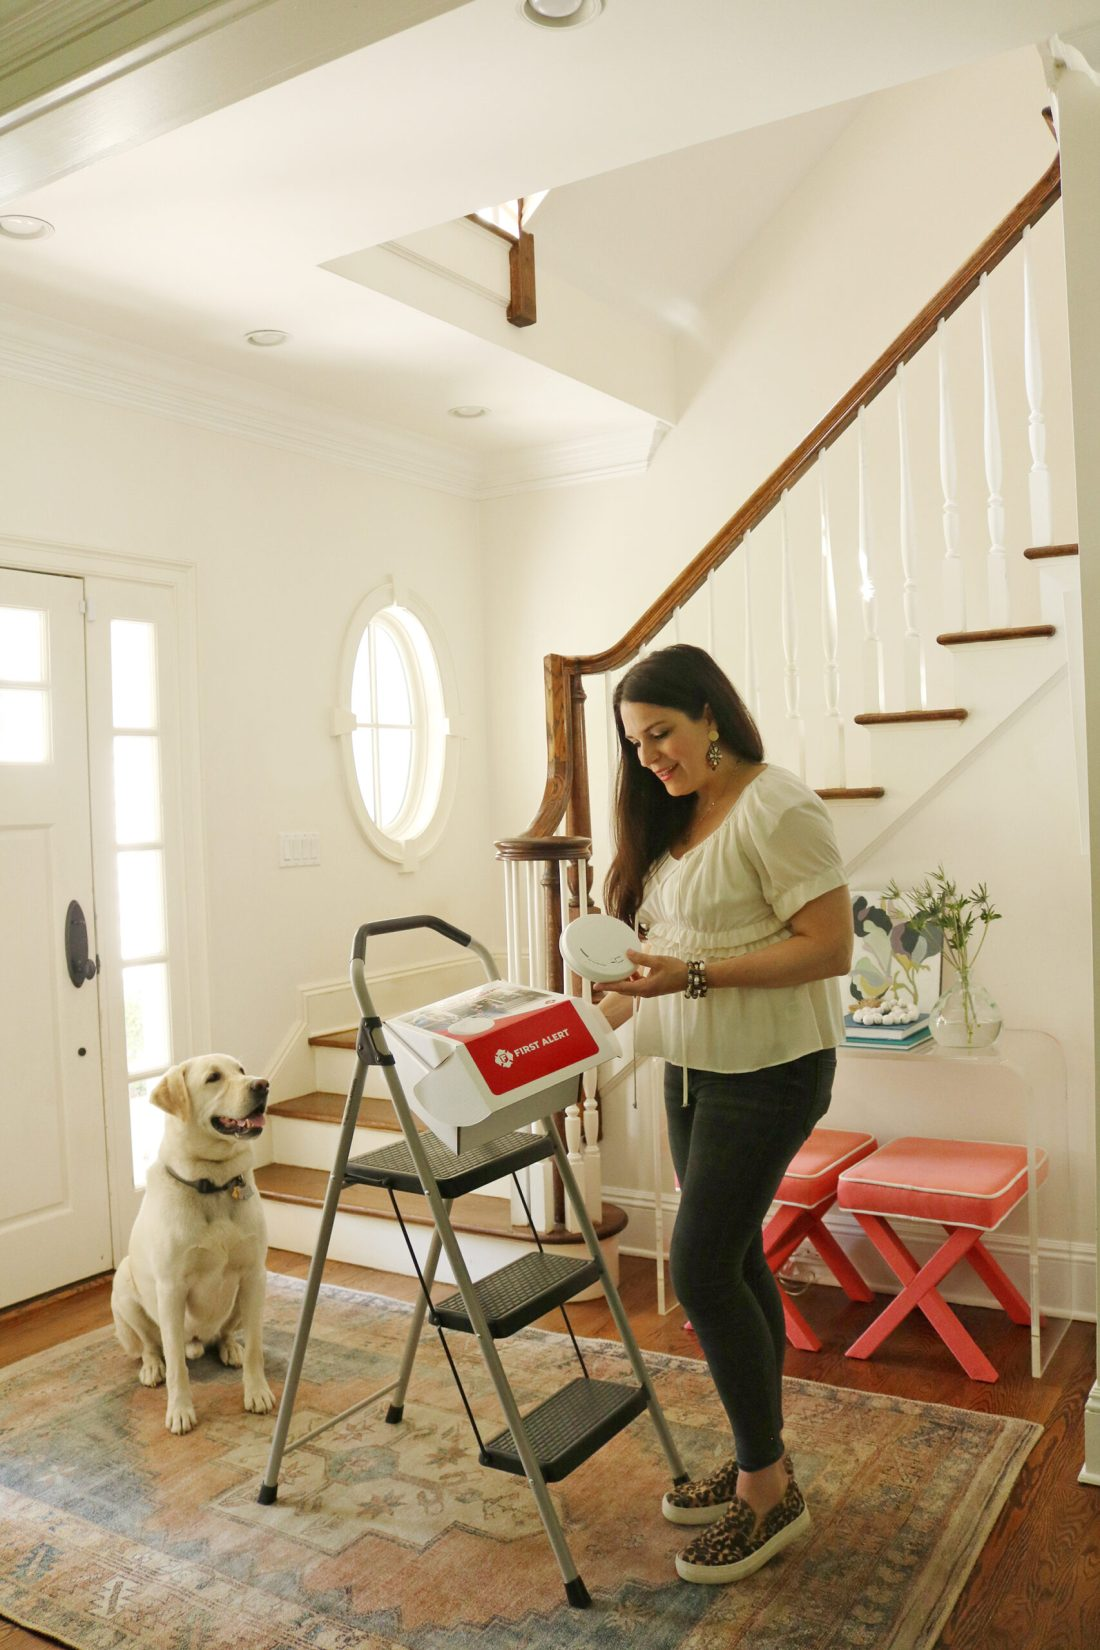 5 Quick Home Maintenance Tips with First Alert to keep your home safe and protected from smoke and carbon monoxide.   @FirstAlert #TimeToReplace #FirstAlert #ad